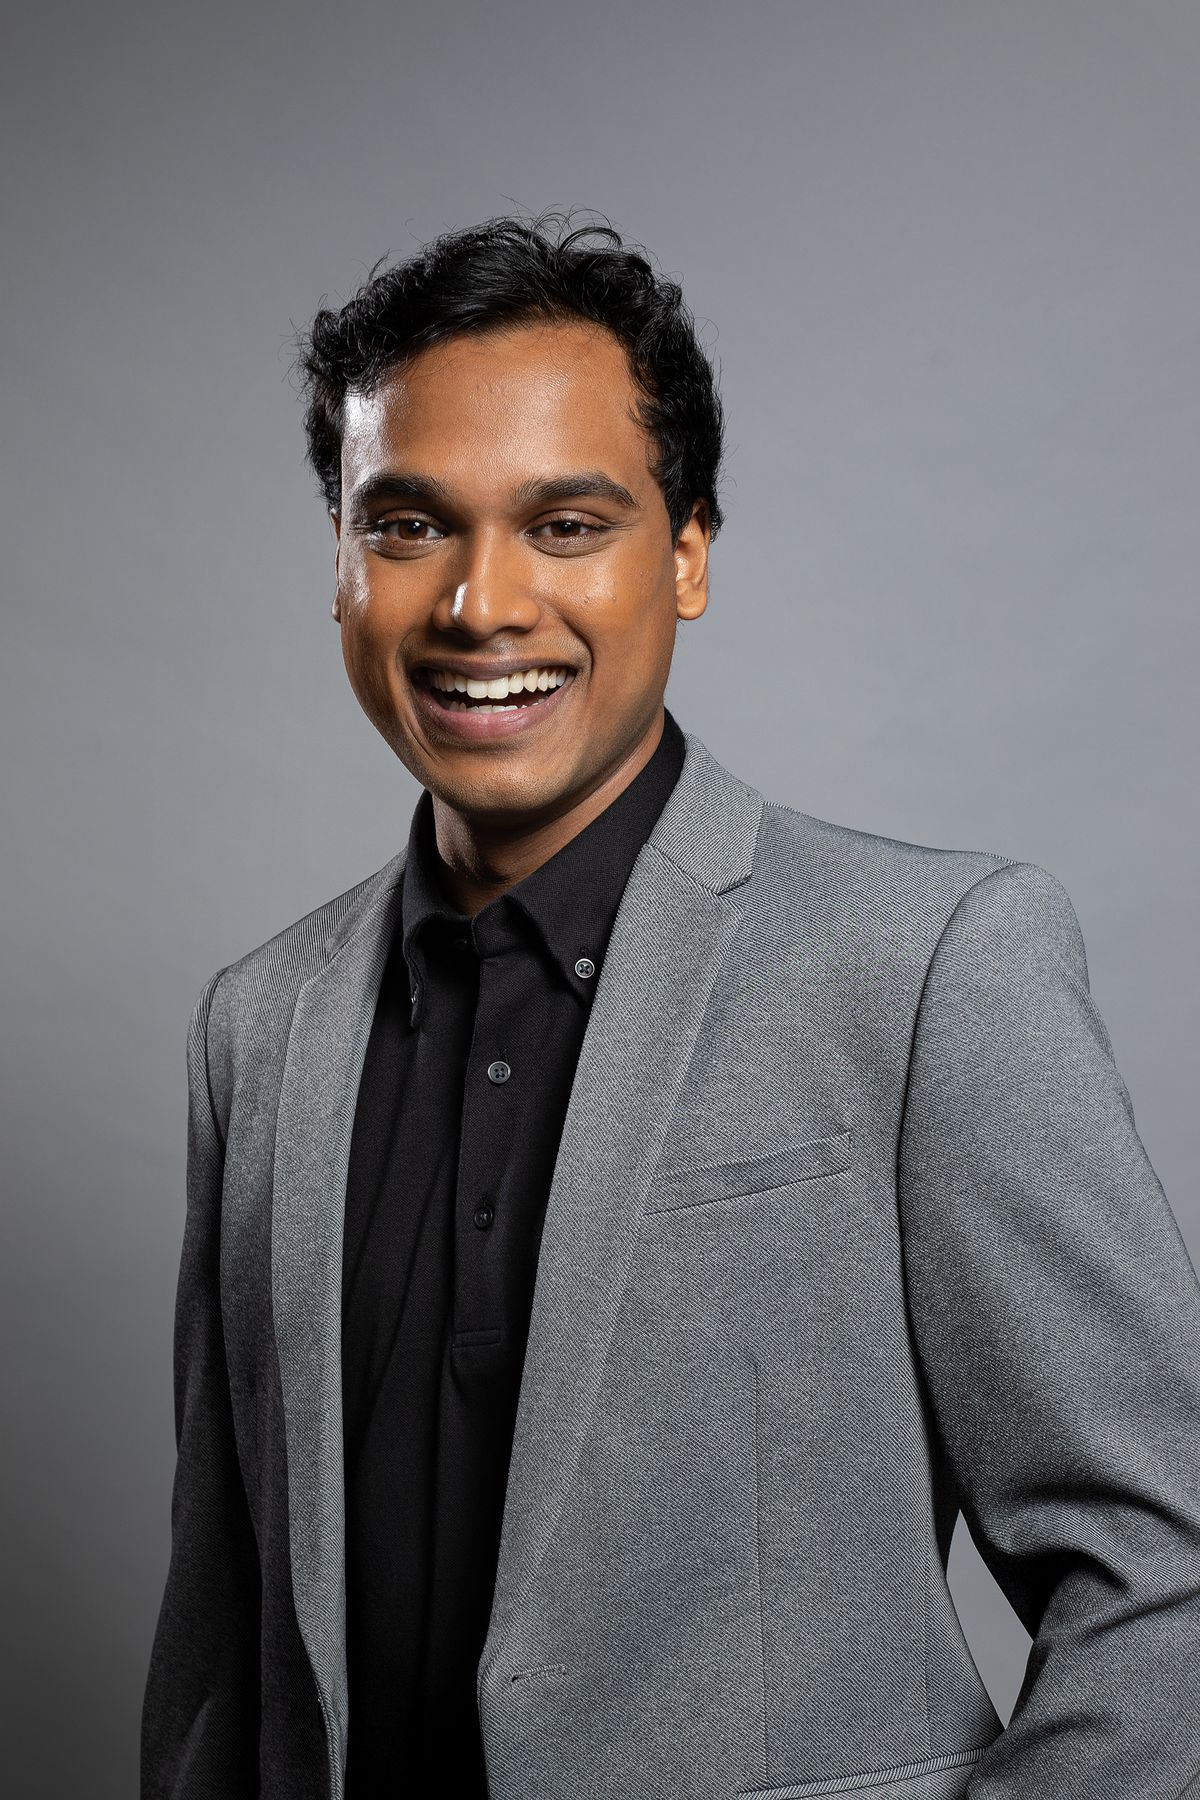 Jimmy Mondal, standing against a gray background smiling, wearing a gray suit jacket over a black dress shirt